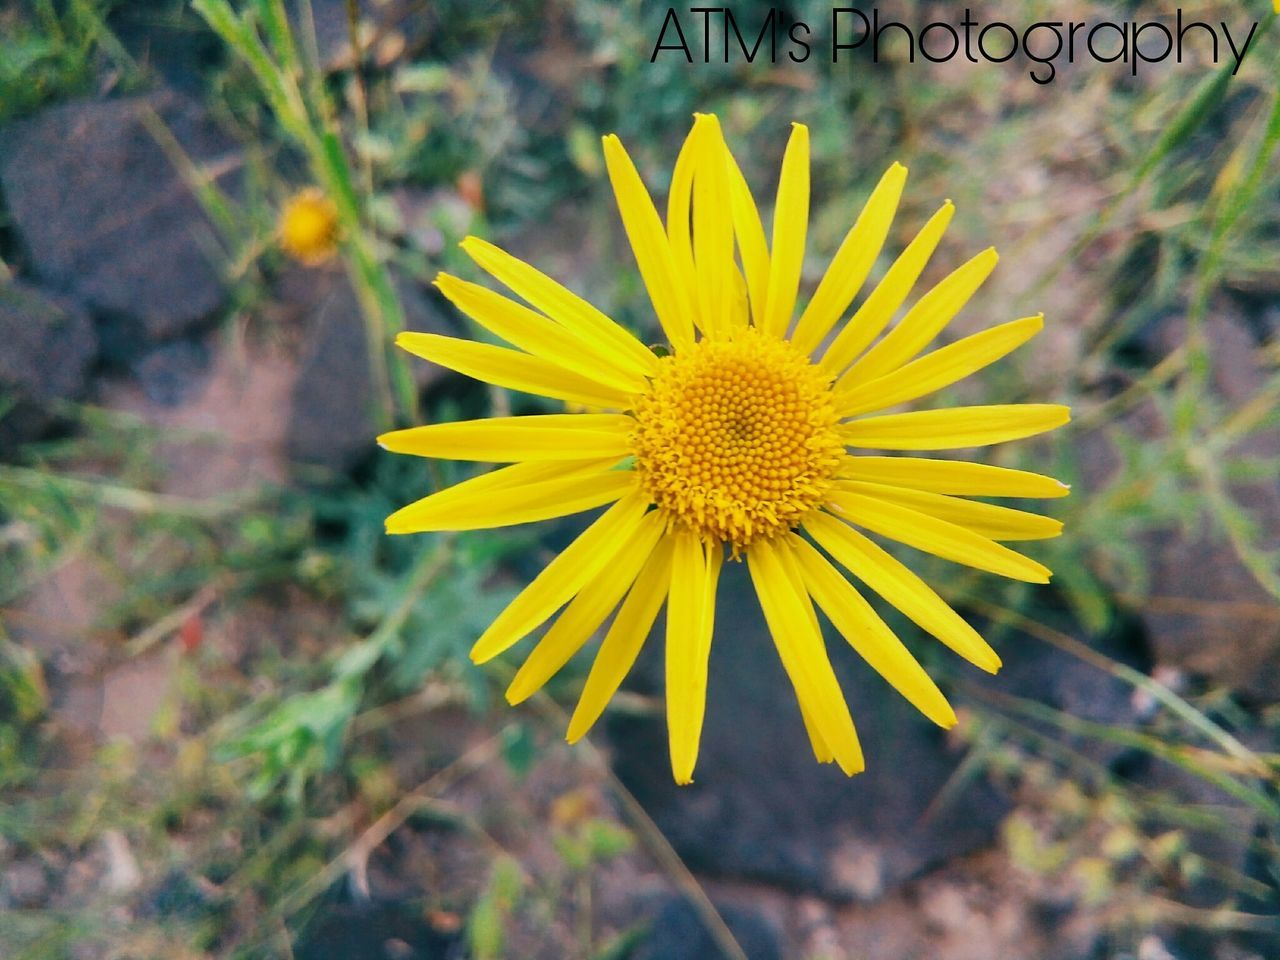 flower, yellow, plant, nature, growth, petal, fragility, flower head, beauty in nature, freshness, outdoors, no people, blooming, day, close-up